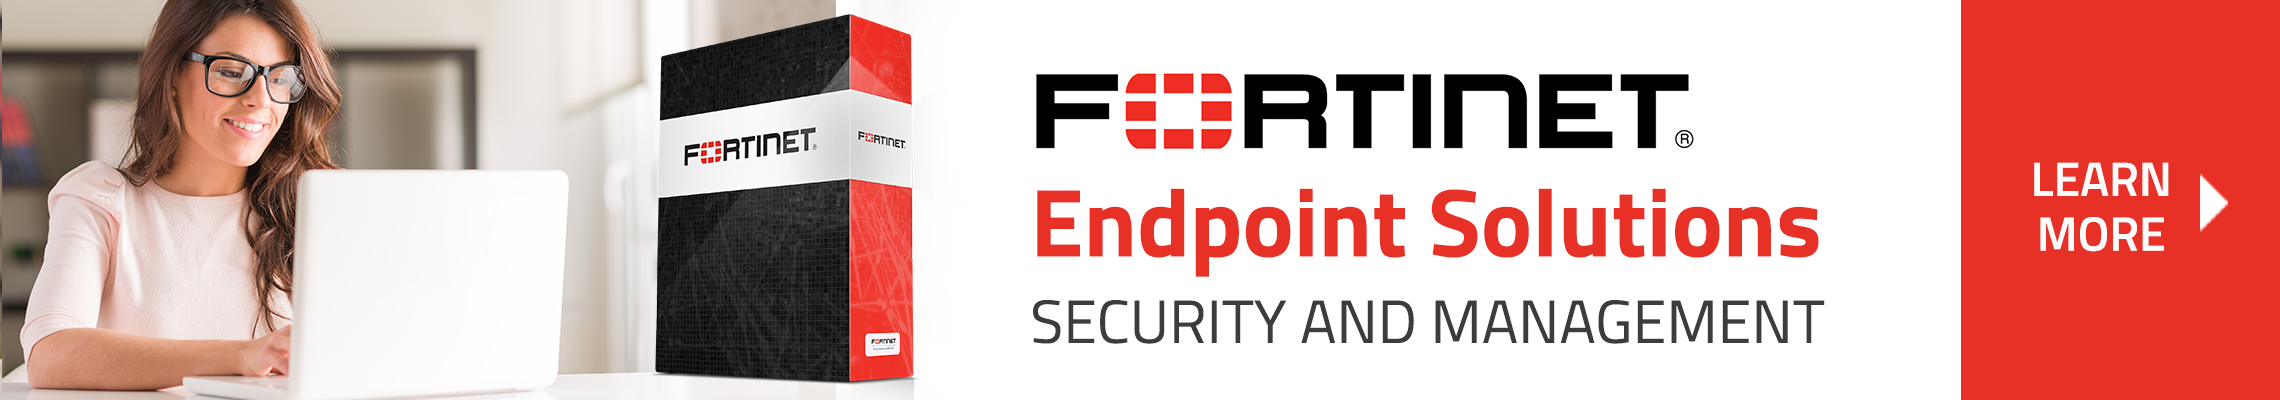 Fortinet Endpoint Solutions Banner